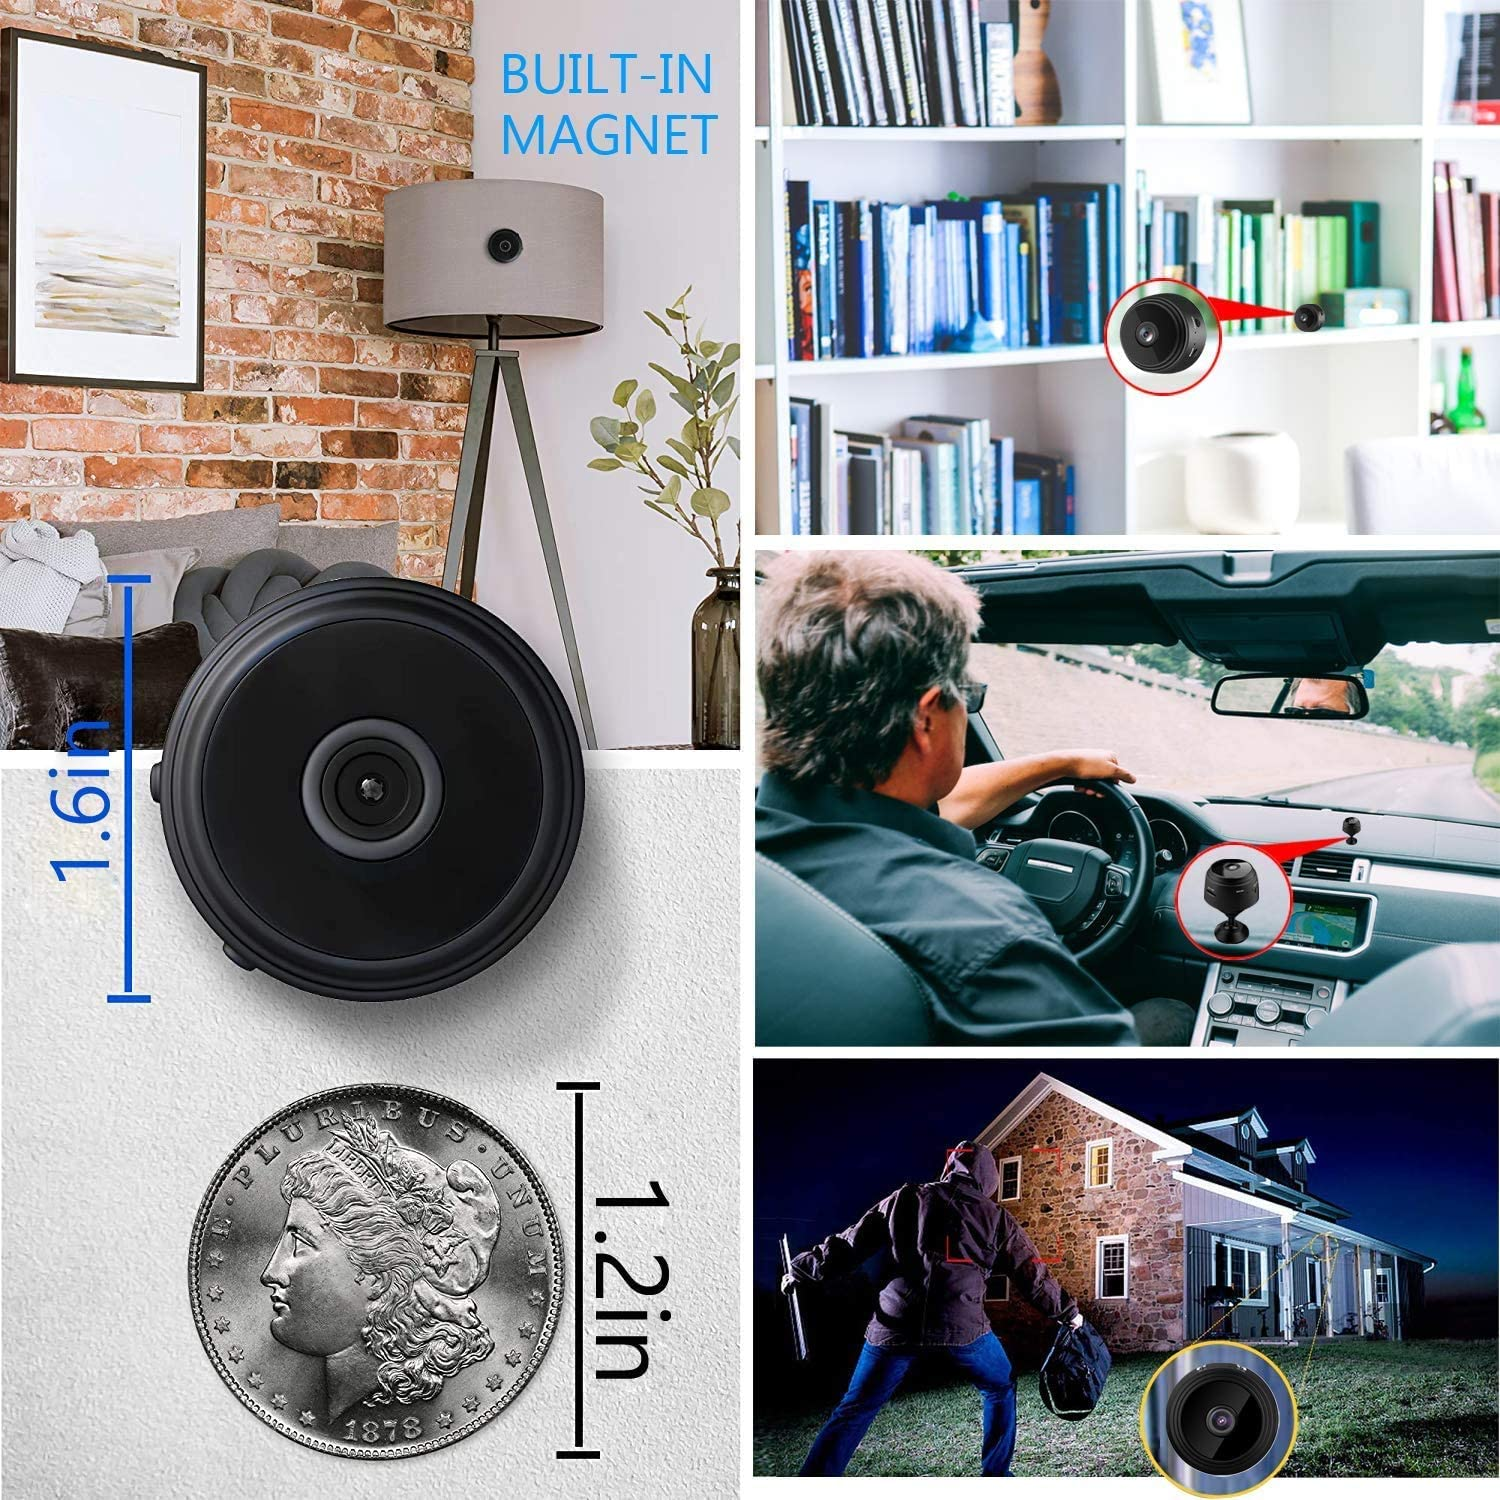 Mini S py Hid den Camera, WiFi Wireless 1080P Hid den Camera with Audio and Video Live Feed, Portable Small HD Nanny Cam with Night Vision and Motion Detection for Car Home Office